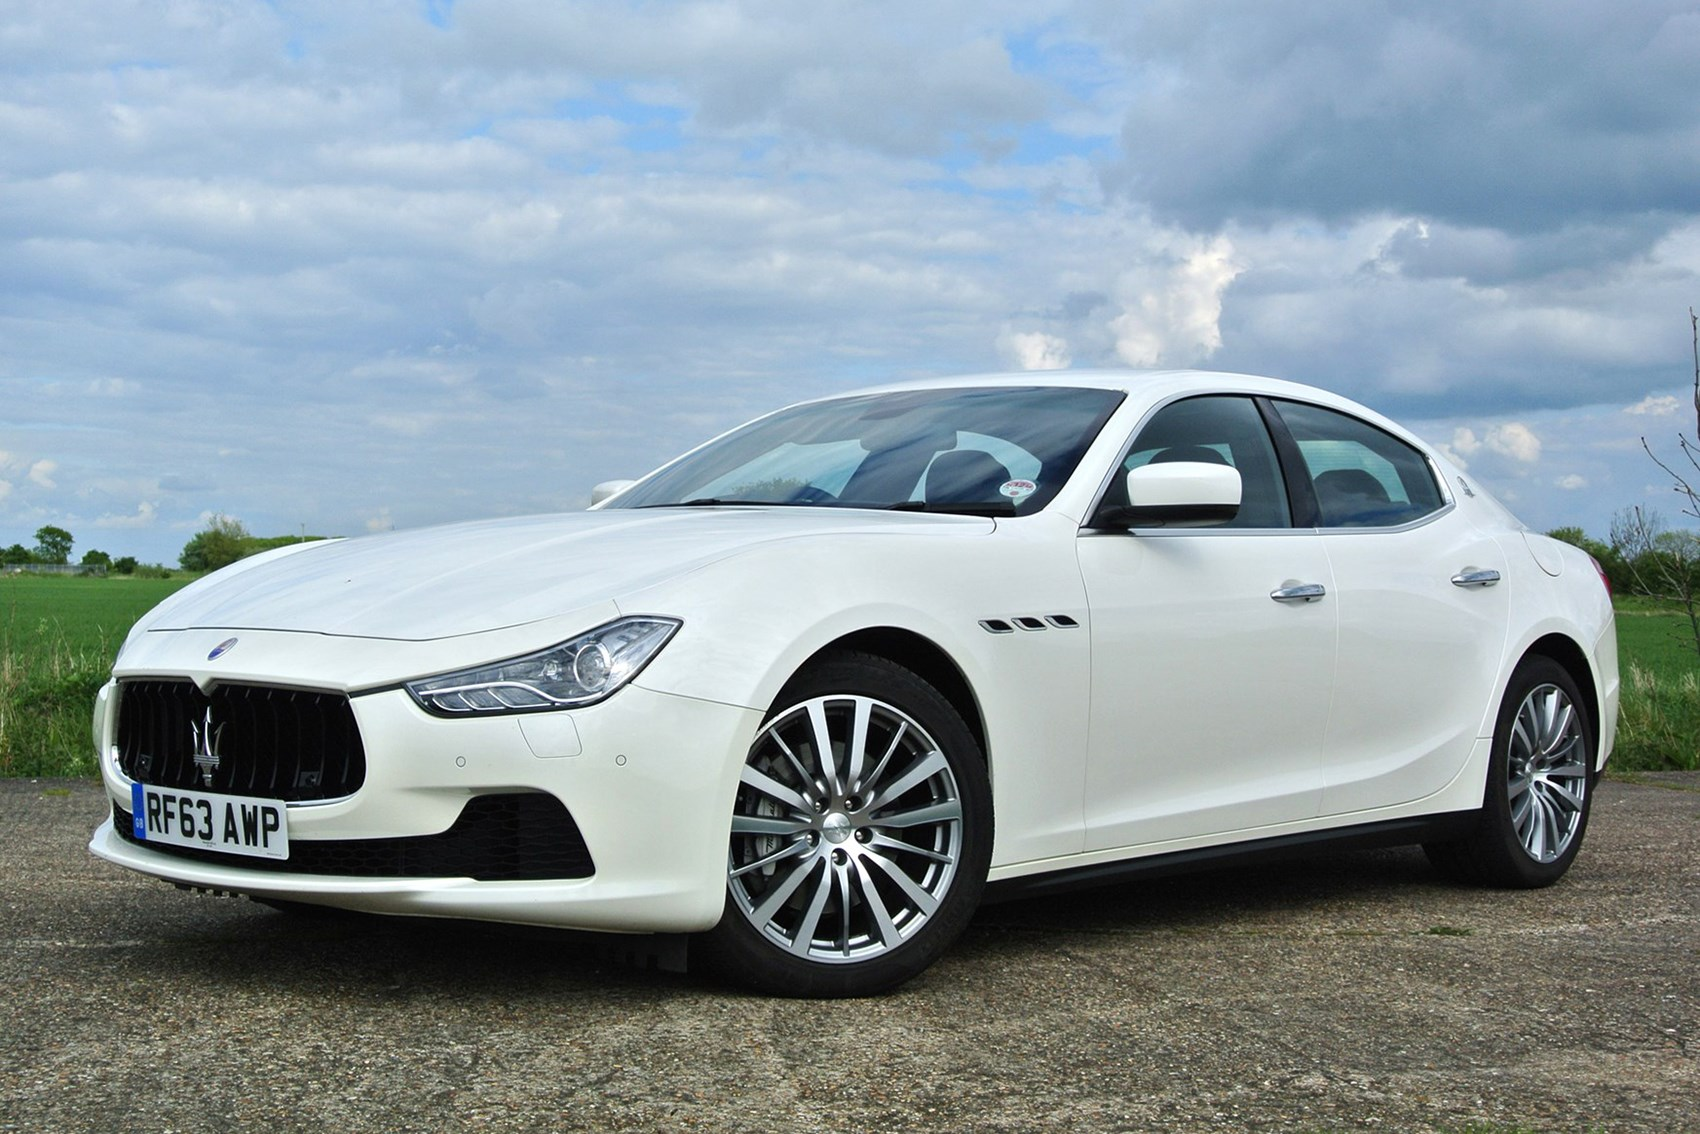 Lovely ... Maserati Ghibli   Best Fast Family Saloon Cars ...